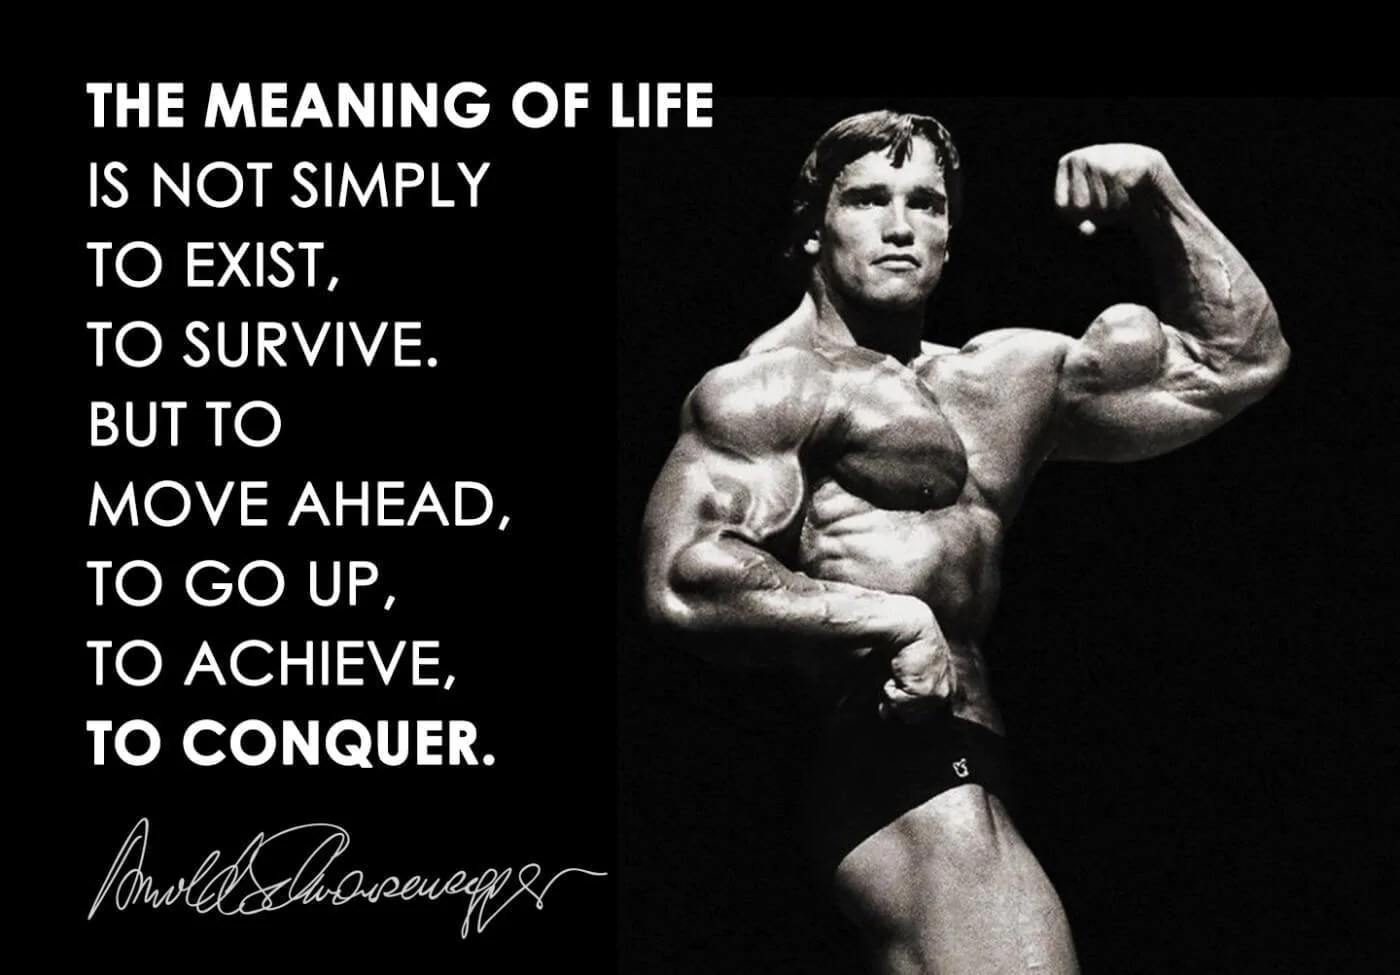 the meaning of life is to conquer arnold schwarzenegger posters